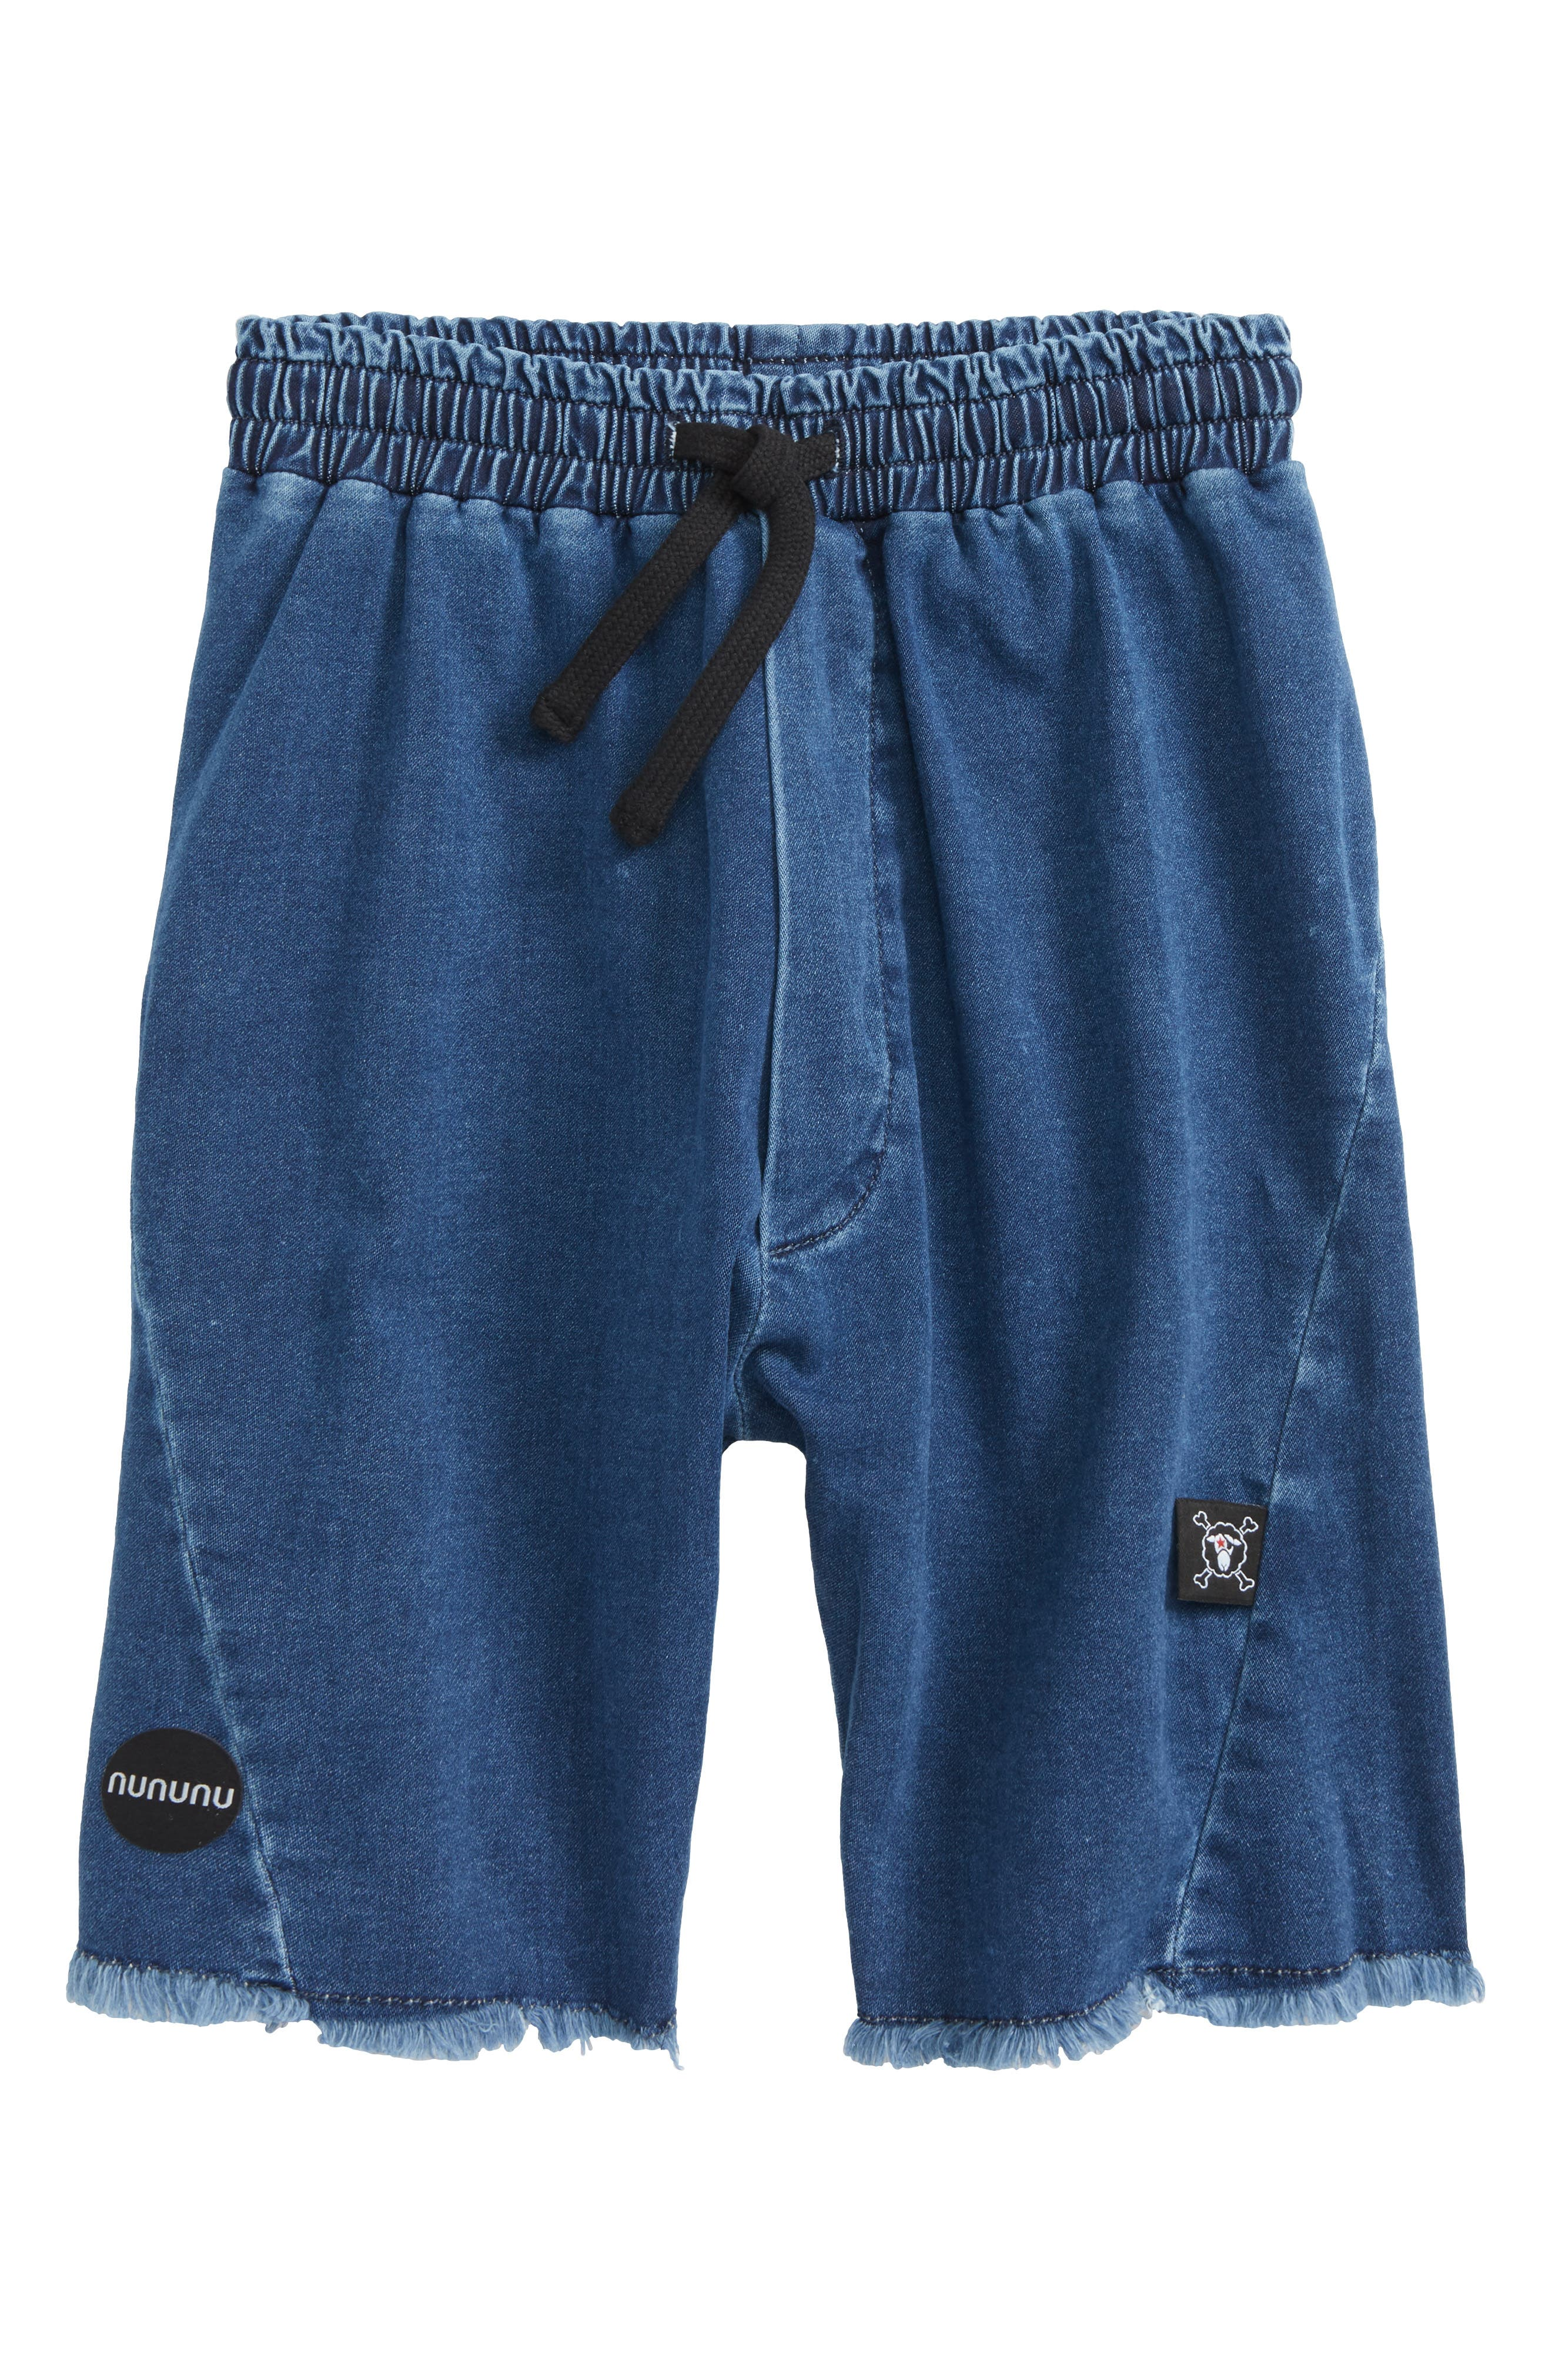 Denim Cutoff Shorts,                             Main thumbnail 1, color,                             400